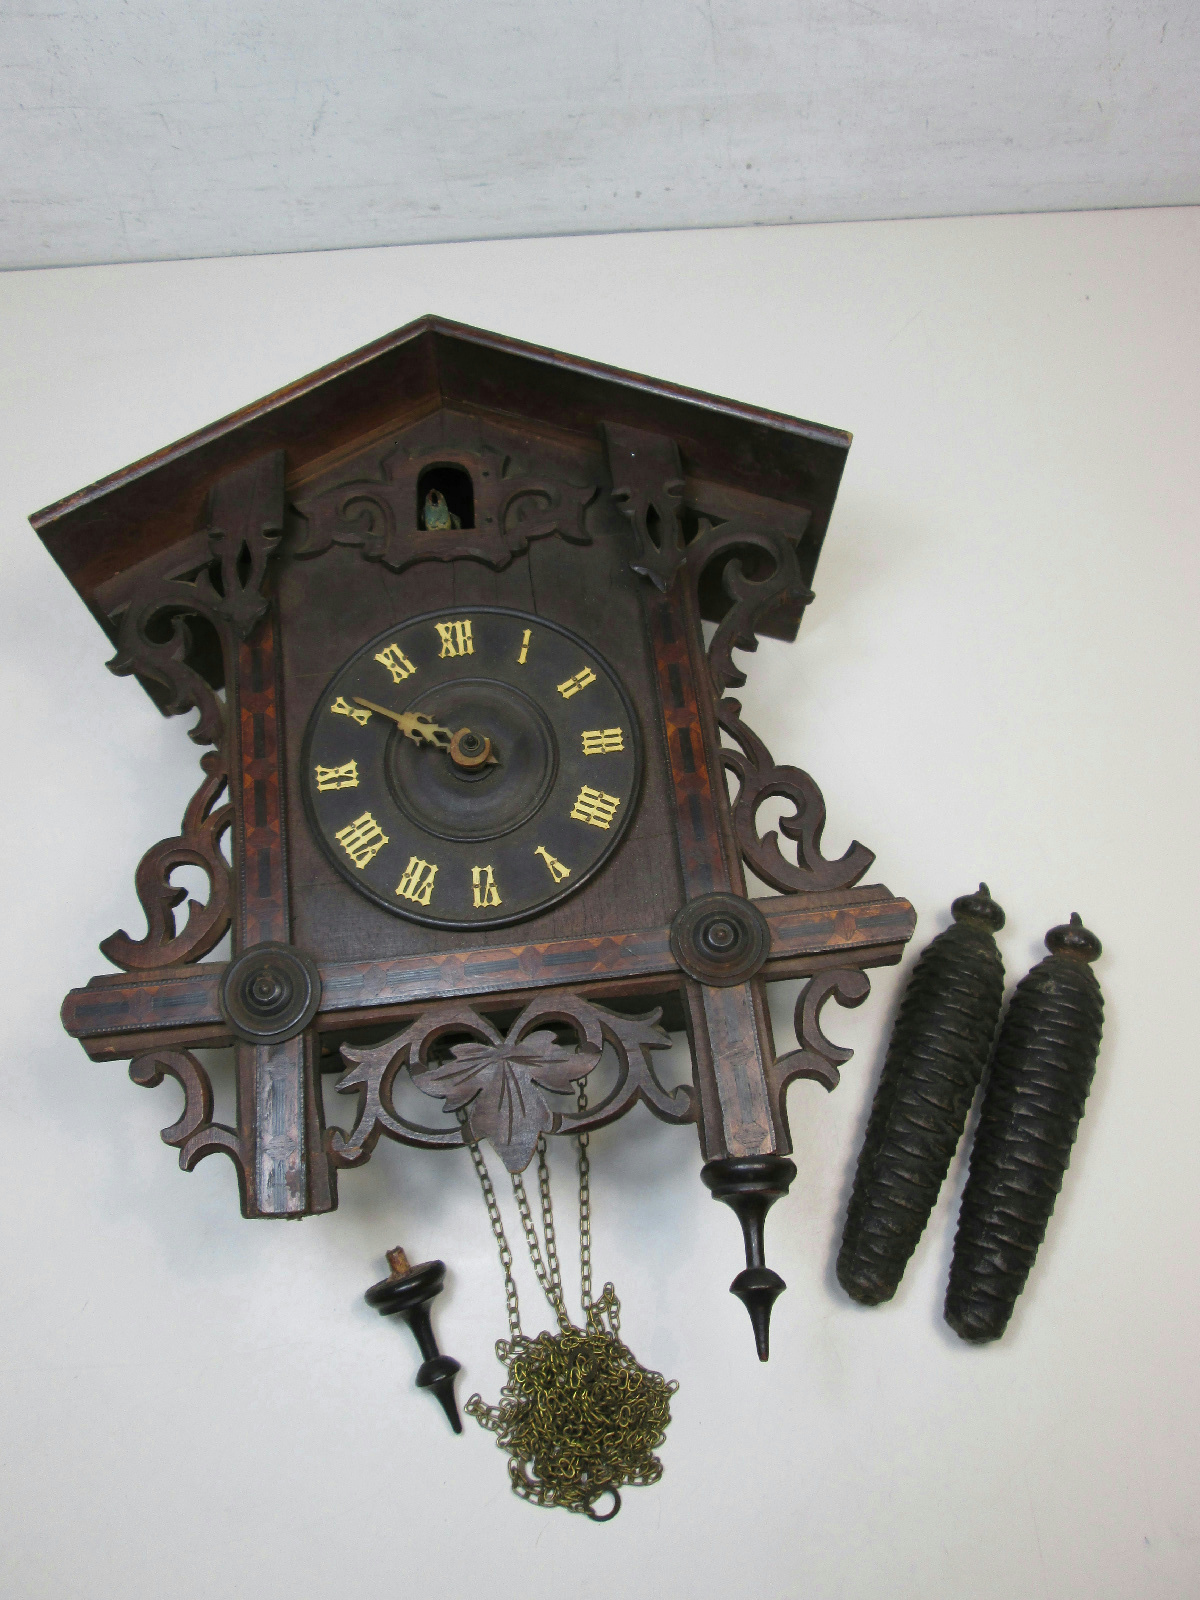 Antique wooden cuckoo clock made in germany for parts or repair ebay - Wooden cuckoo clocks ...